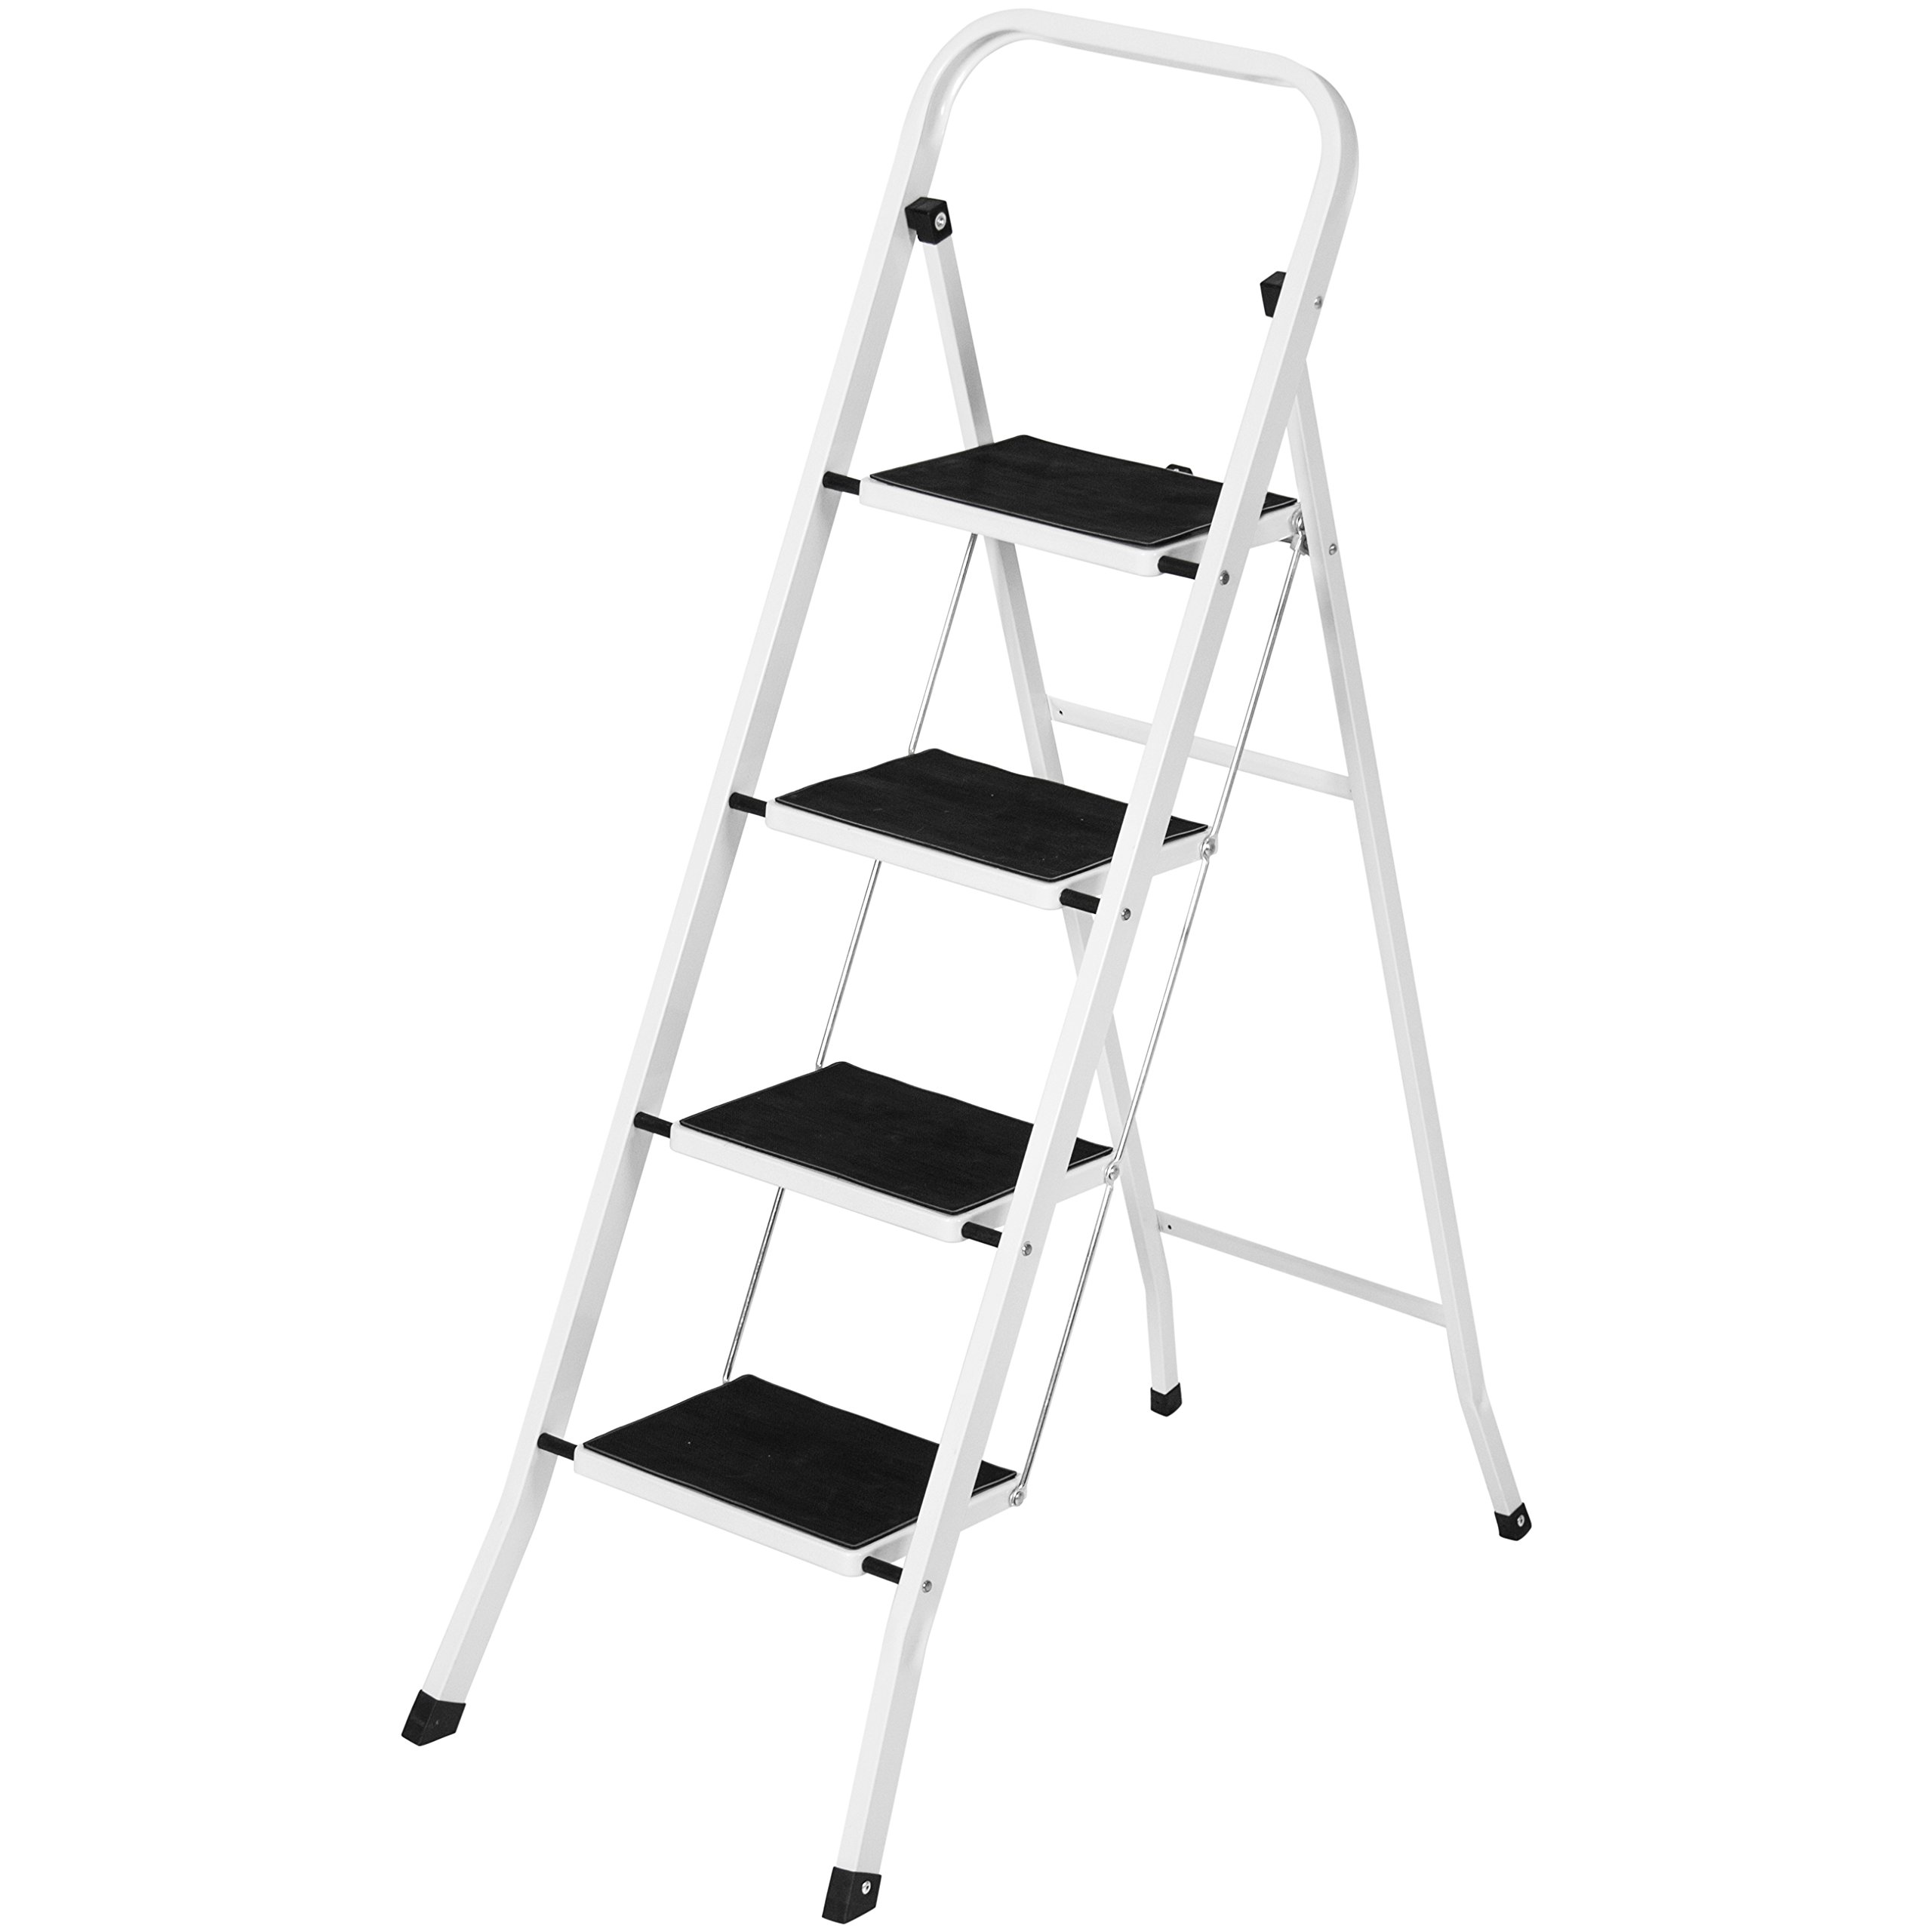 Best Choice Products Portable Folding 4-Step Ladder w/Hand Rail, 300lb Capacity by Best Choice Products